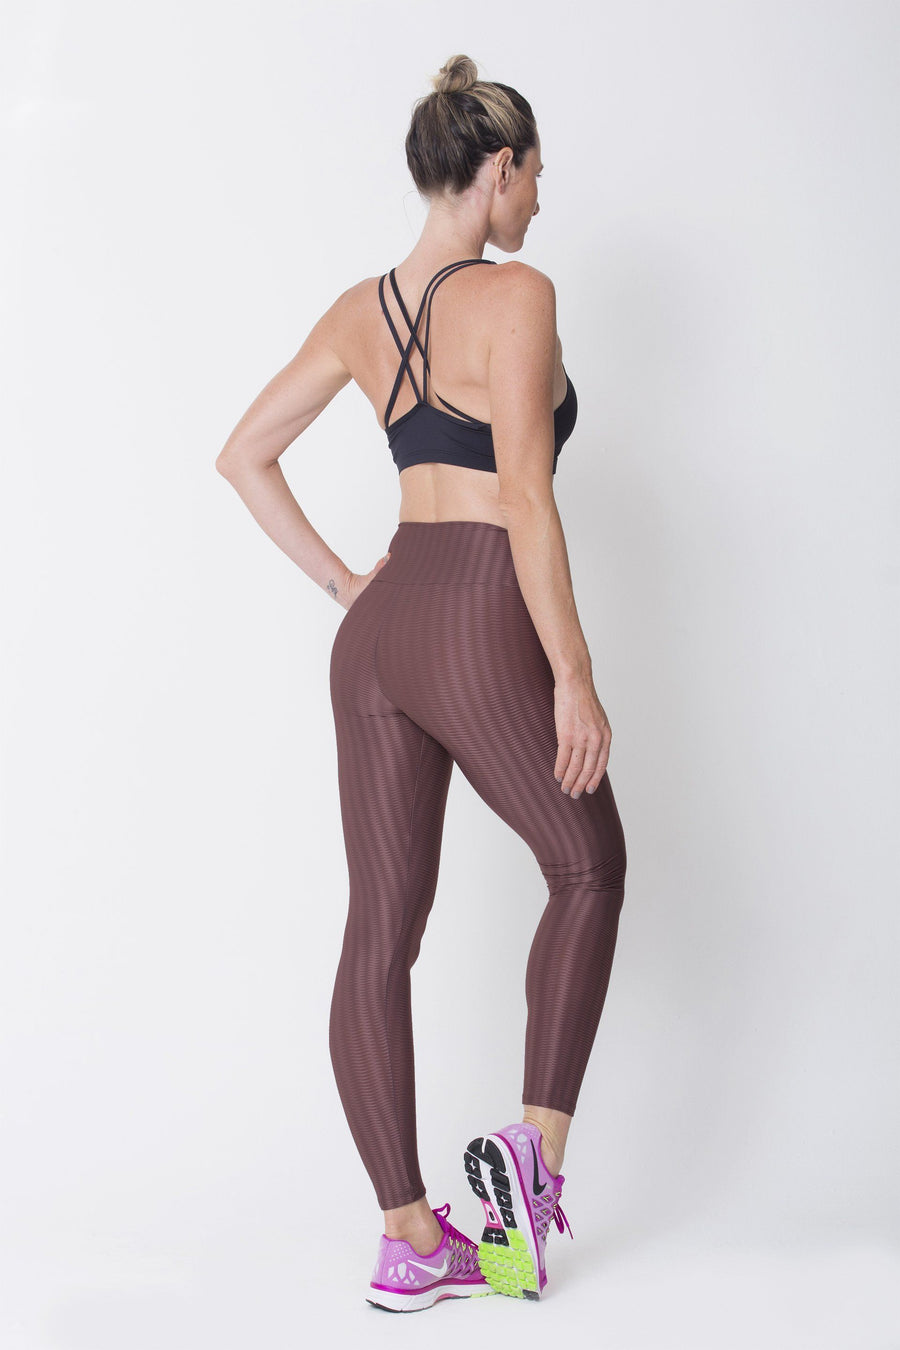 Brown 3D Disco Leggings - Sam's Fitness Goods